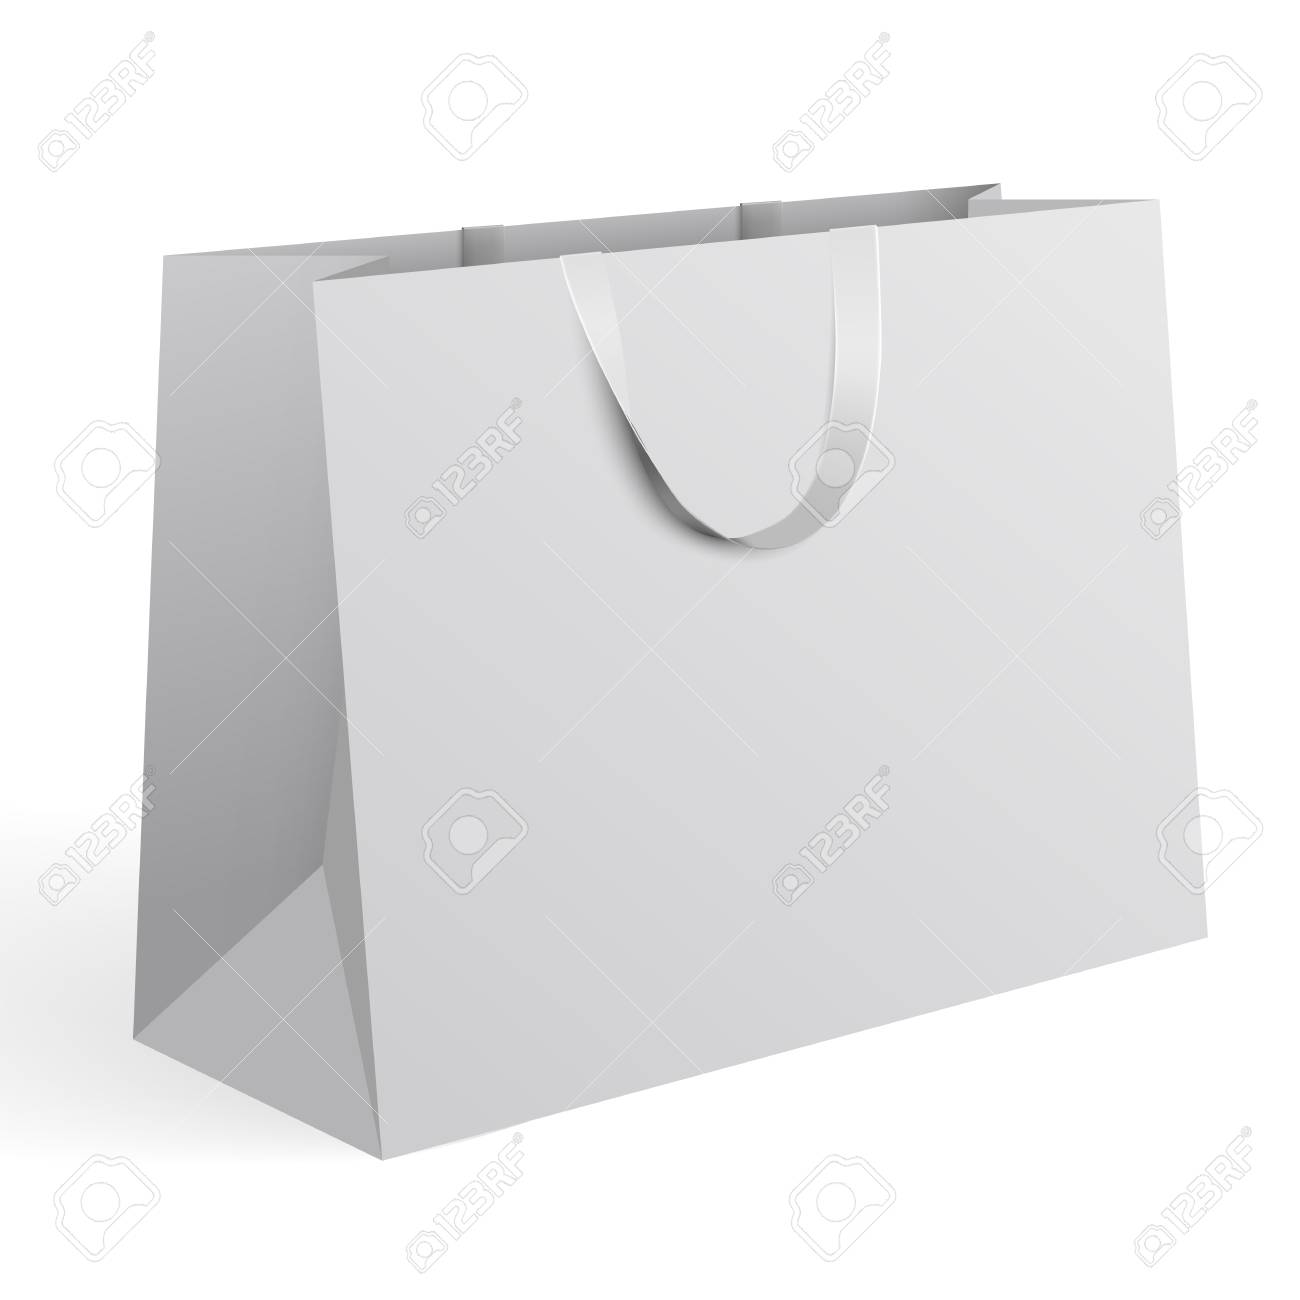 shopping bag icon in trendy style isolated background. 3d Realistic Vector Illustration Of White Paper Shopping Bag Blank Paper Bag Template Vector Royalty Free Cliparts Vectors And Stock Illustration Image 93898662